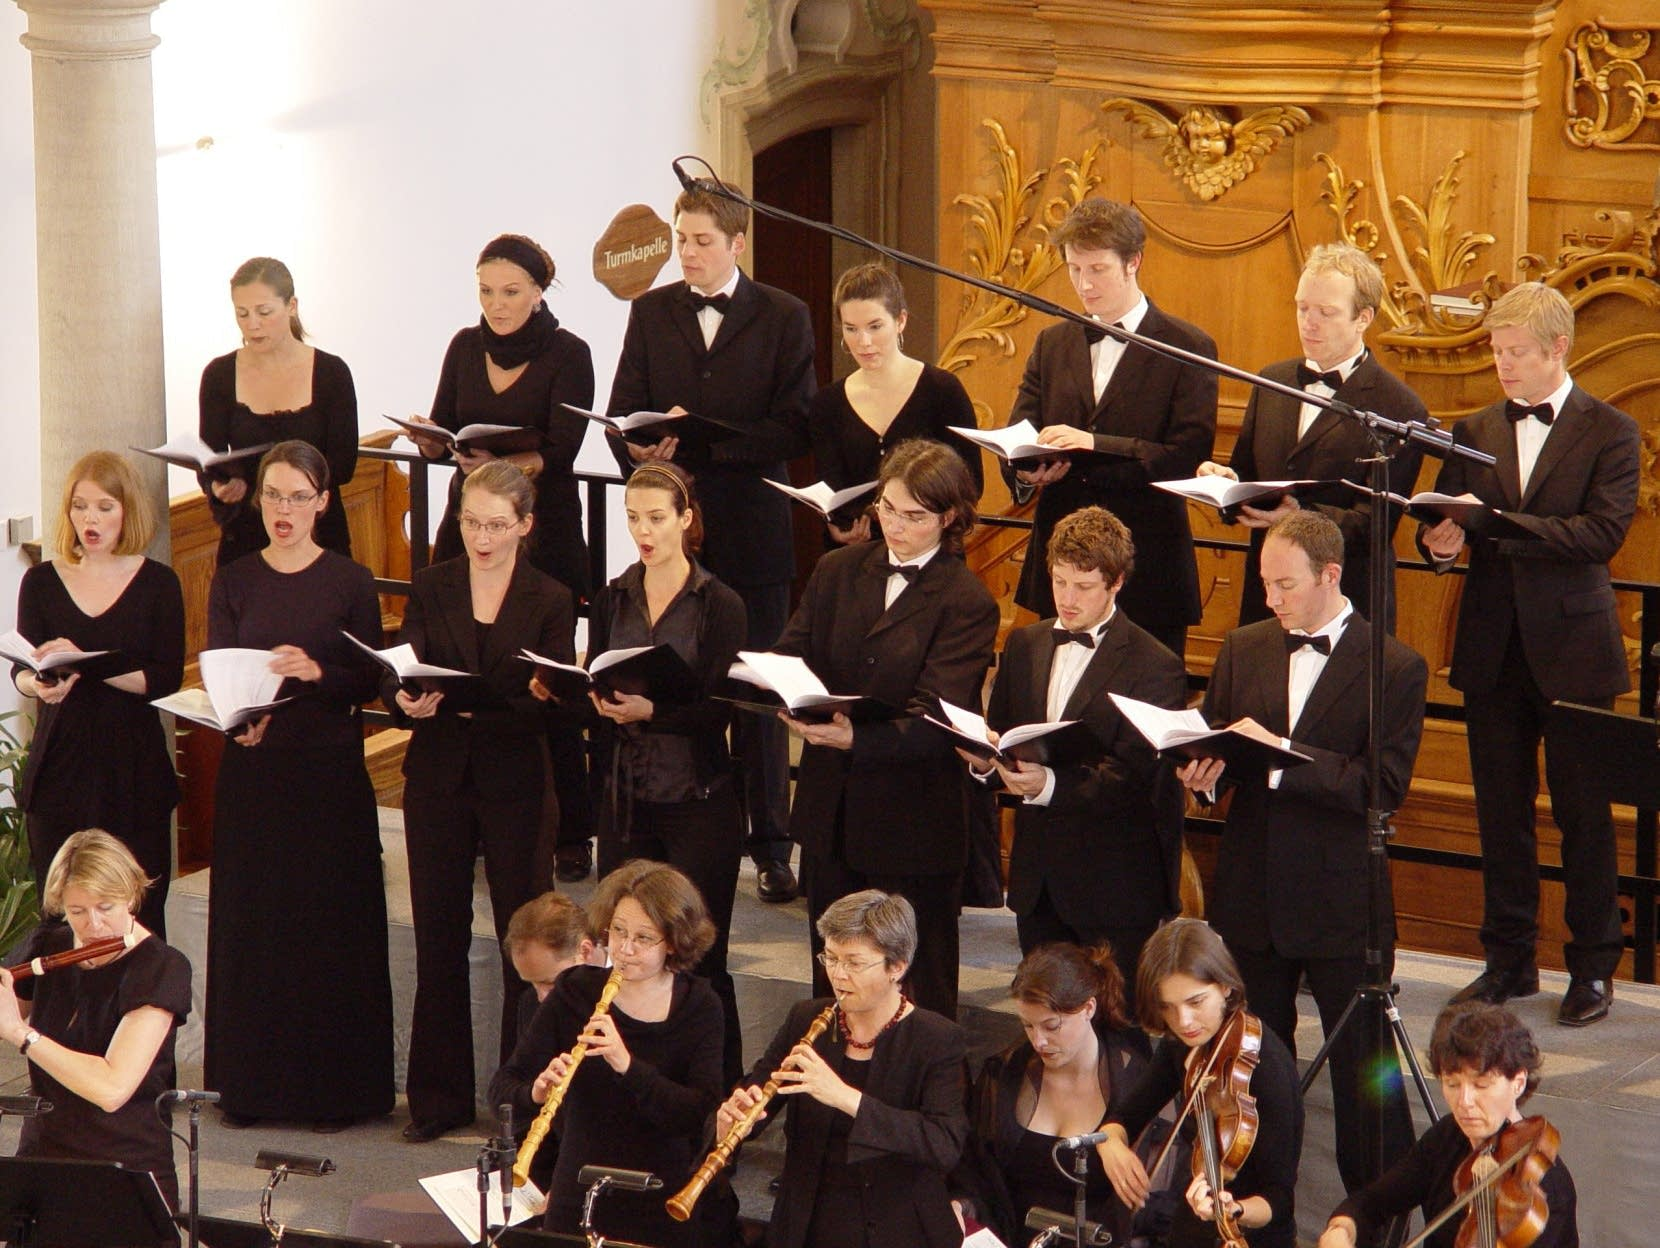 The Choir and Orchestra of the J.S. Bach Foundation